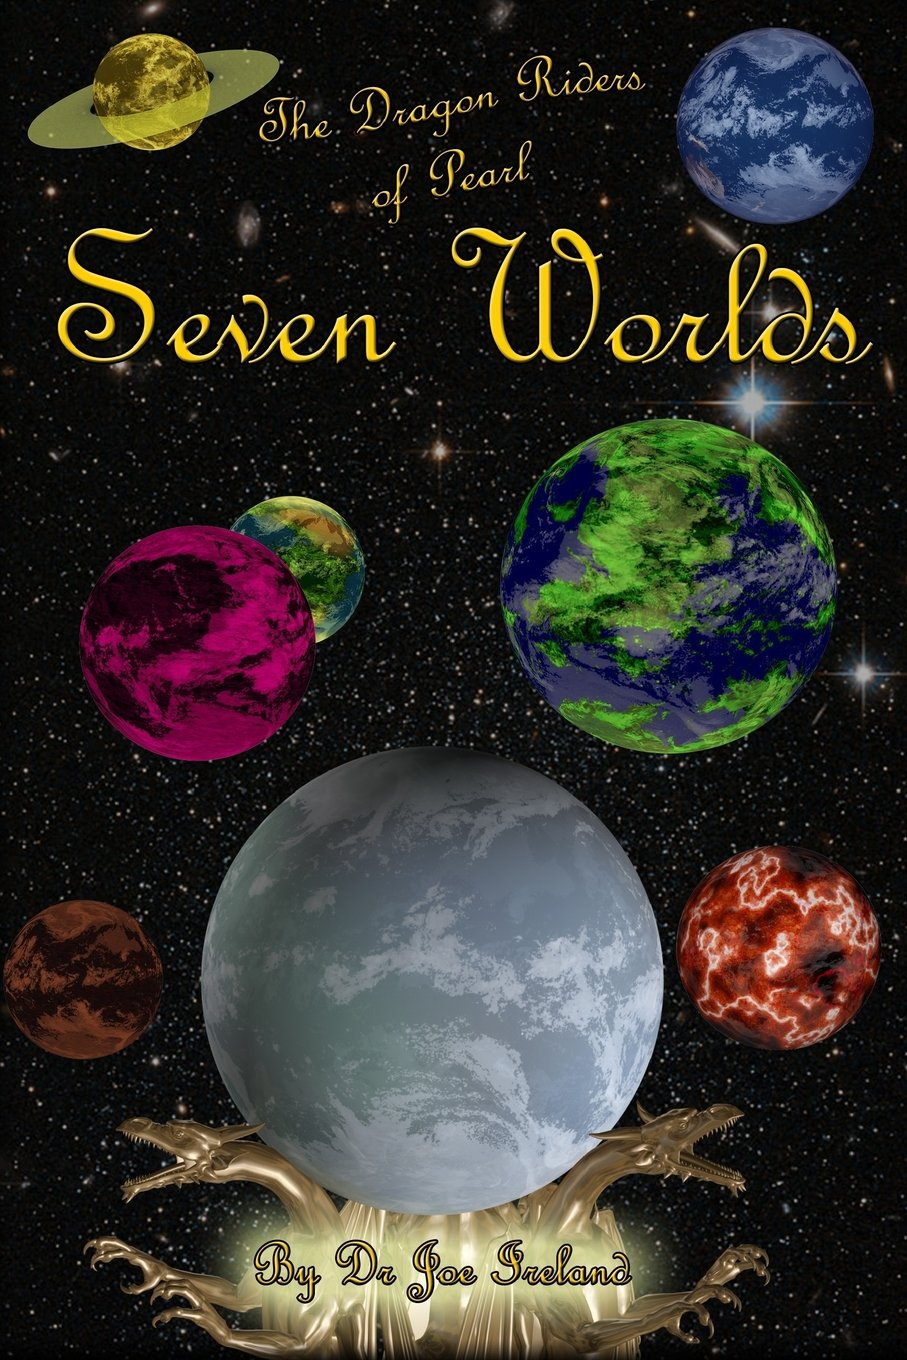 Download The Dragon Riders of Pearl - Seven Worlds (Volume 2) PDF